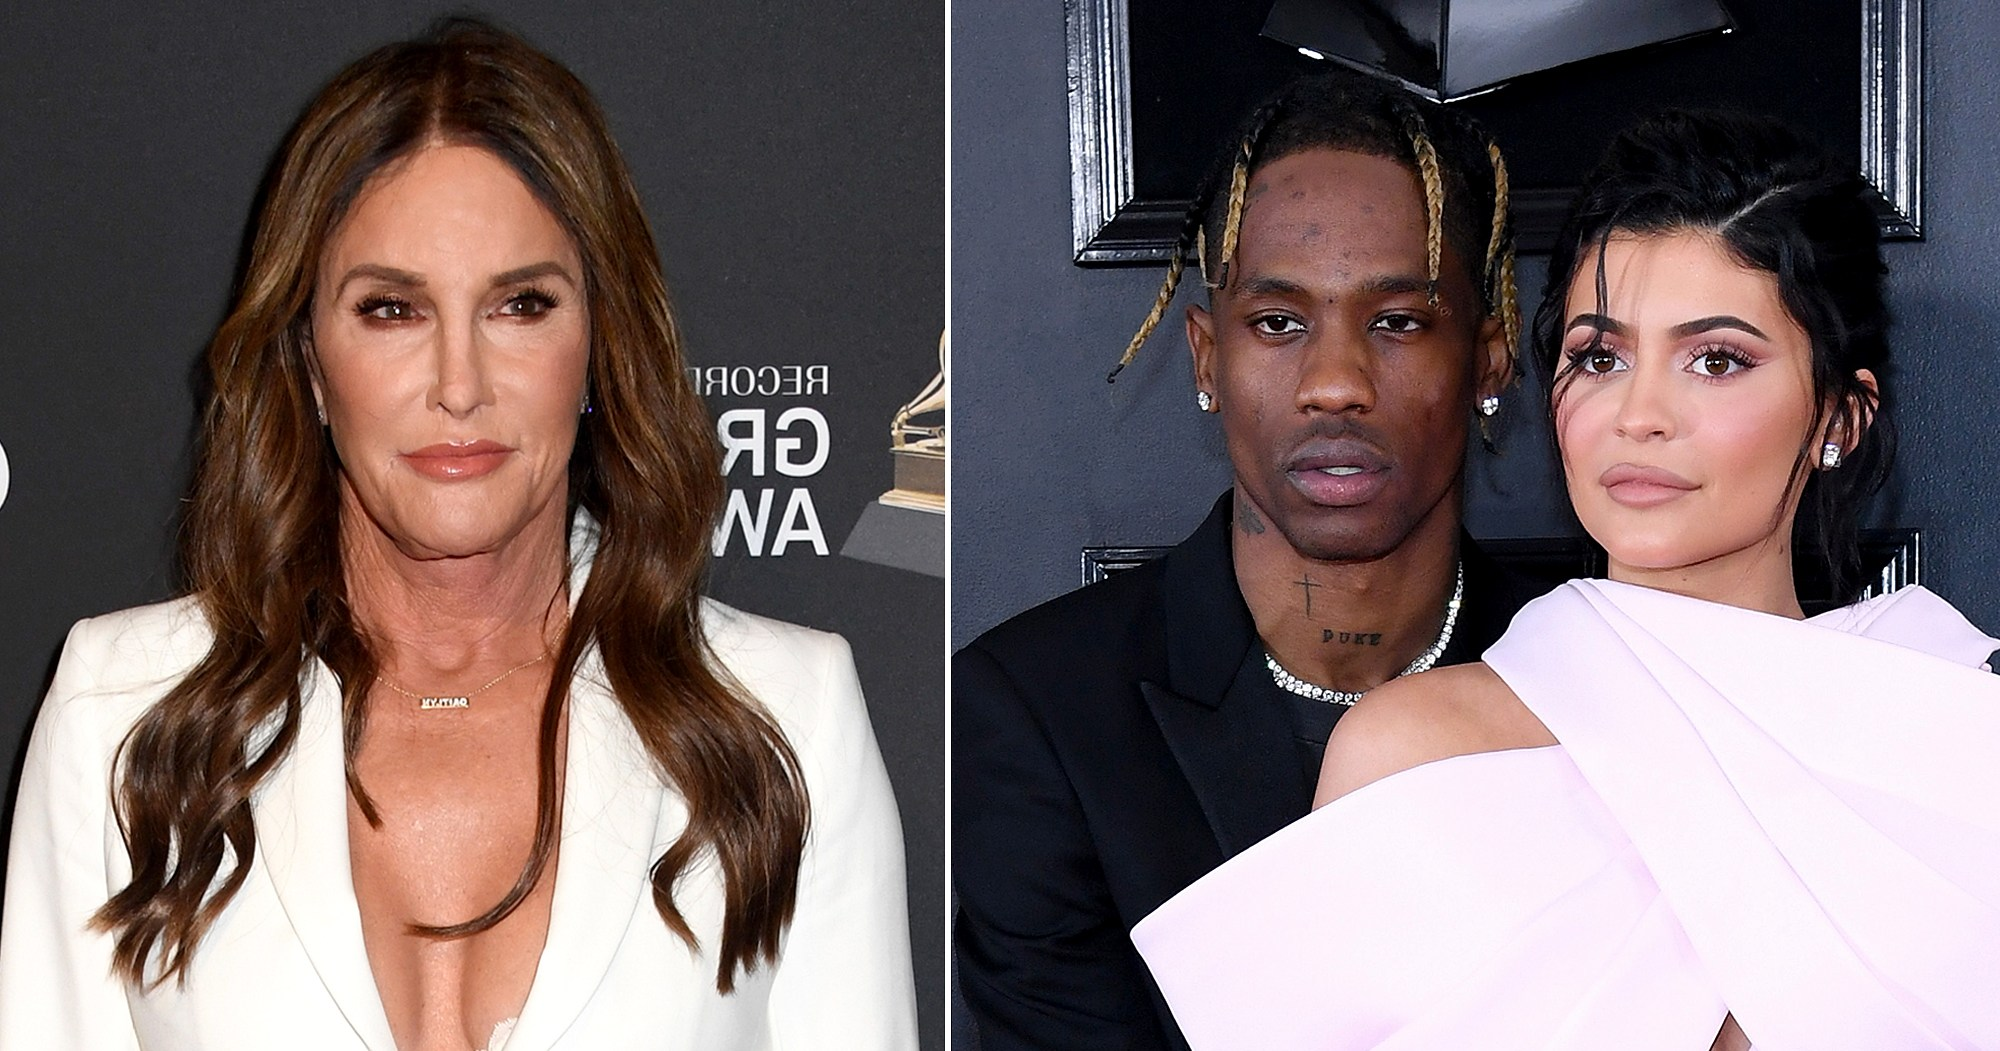 Caitlyn Jenner Shows 'Love and Support' for Kylie, Travis Scott During Grammys